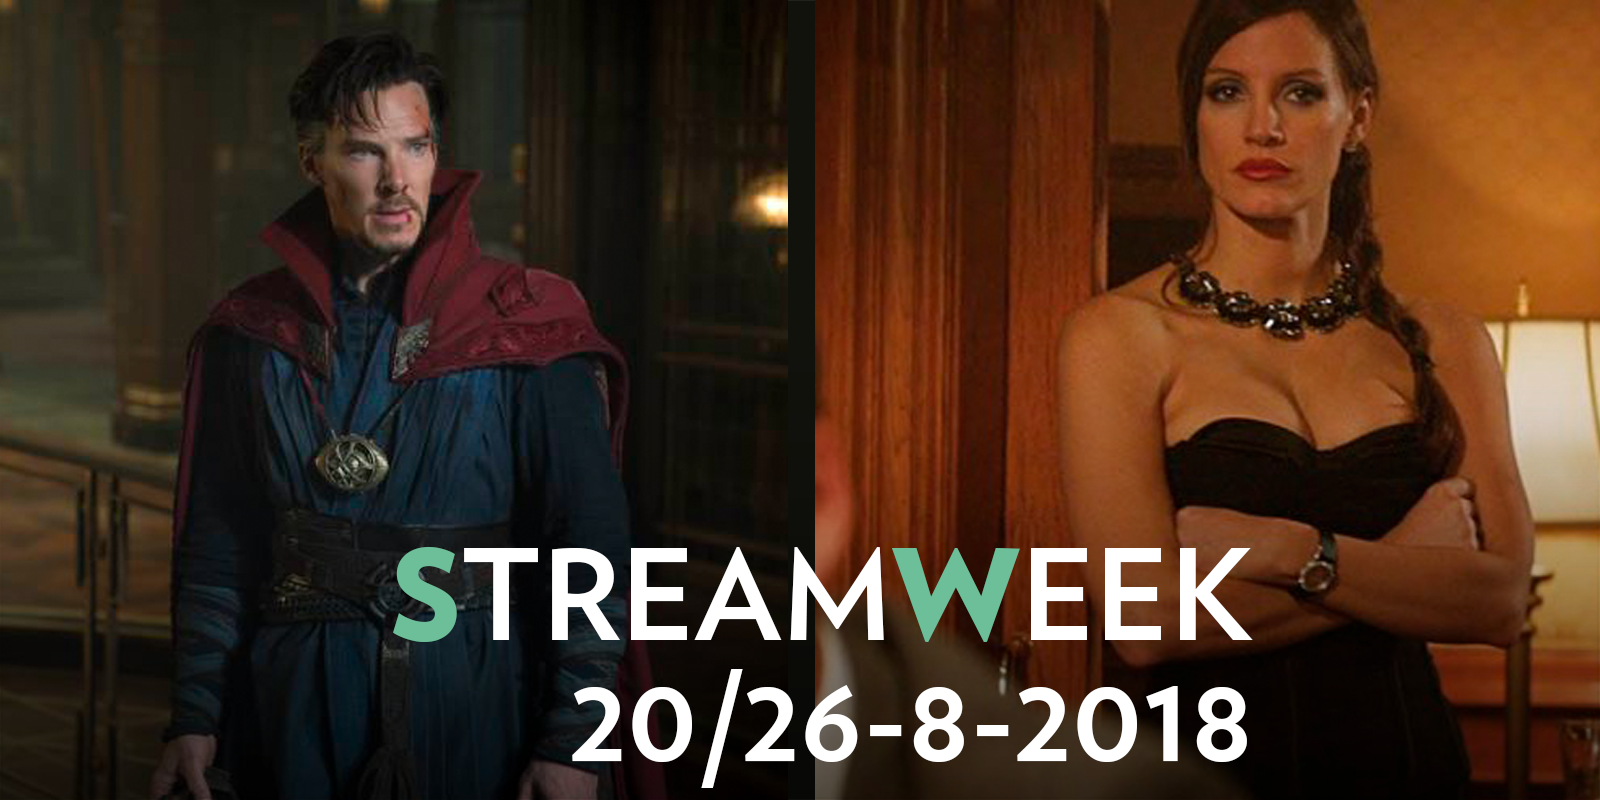 StreamWeek: le magie del Doctor Strange, i trucchi di Molly's Game